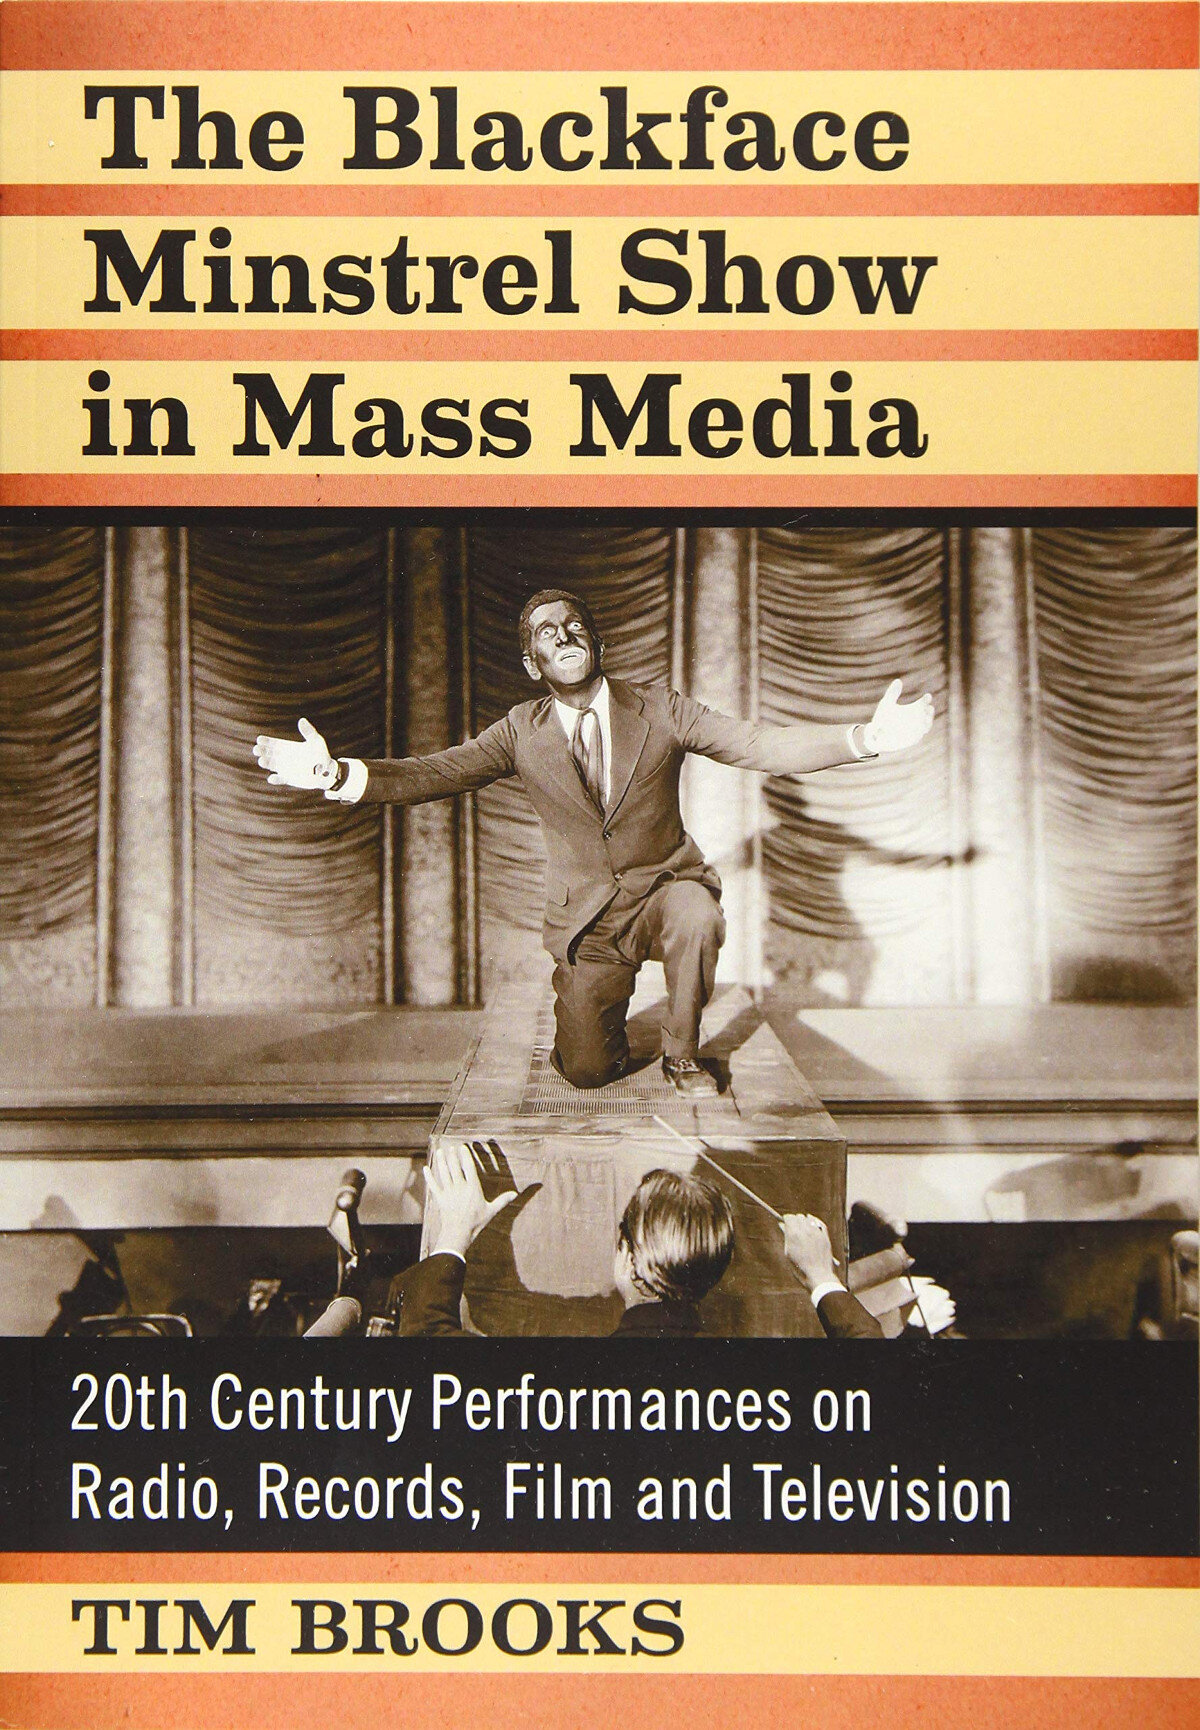 The Blackface Minstrel Show in Mass Media